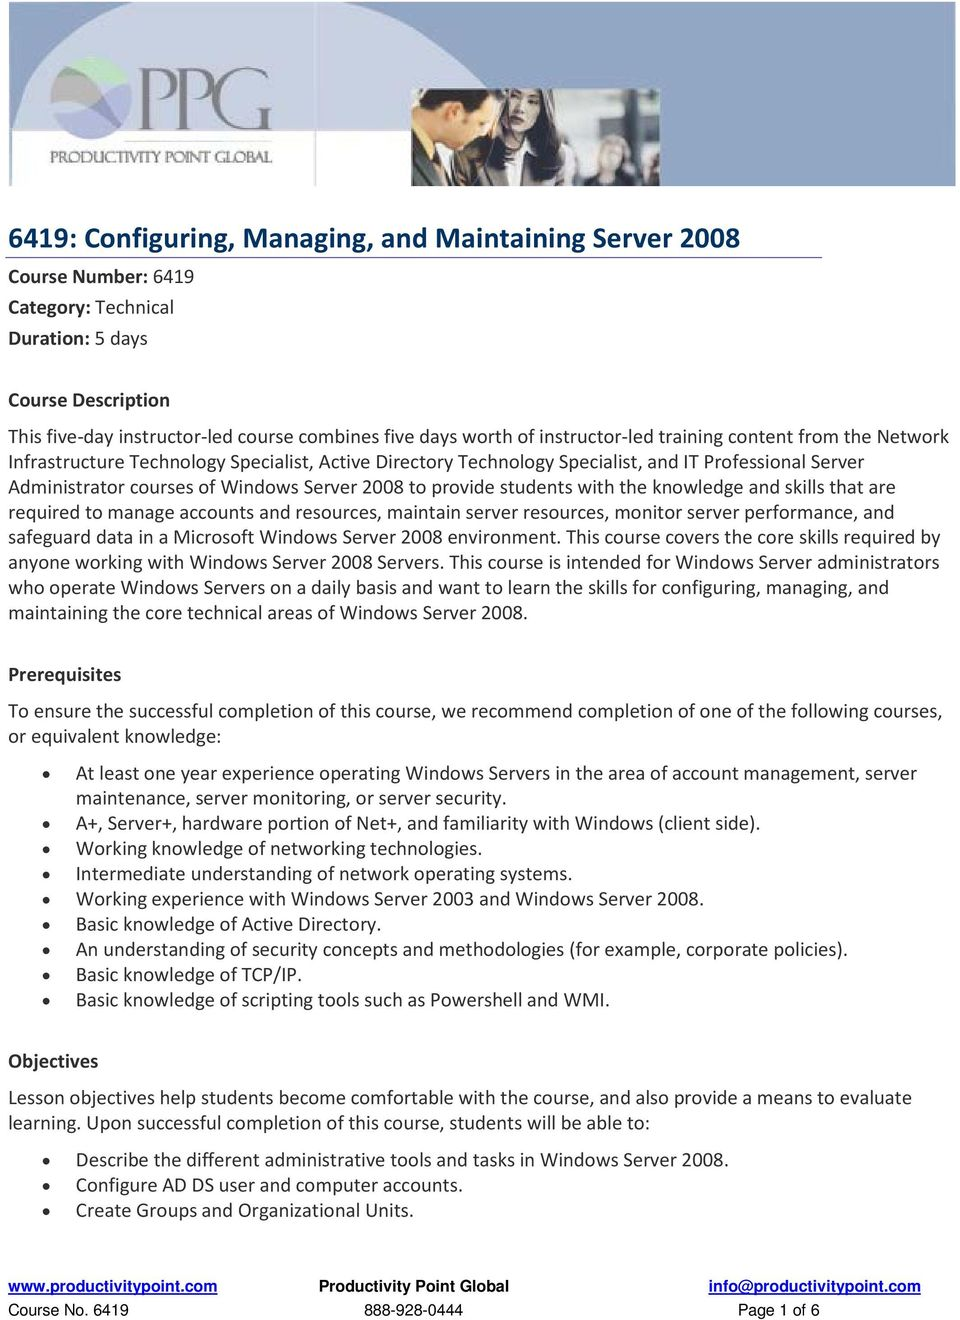 to provide students with the knowledge and skills that are required to manage accounts and resources, maintain server resources, monitor server performance, and safeguard data in a Microsoft Windows